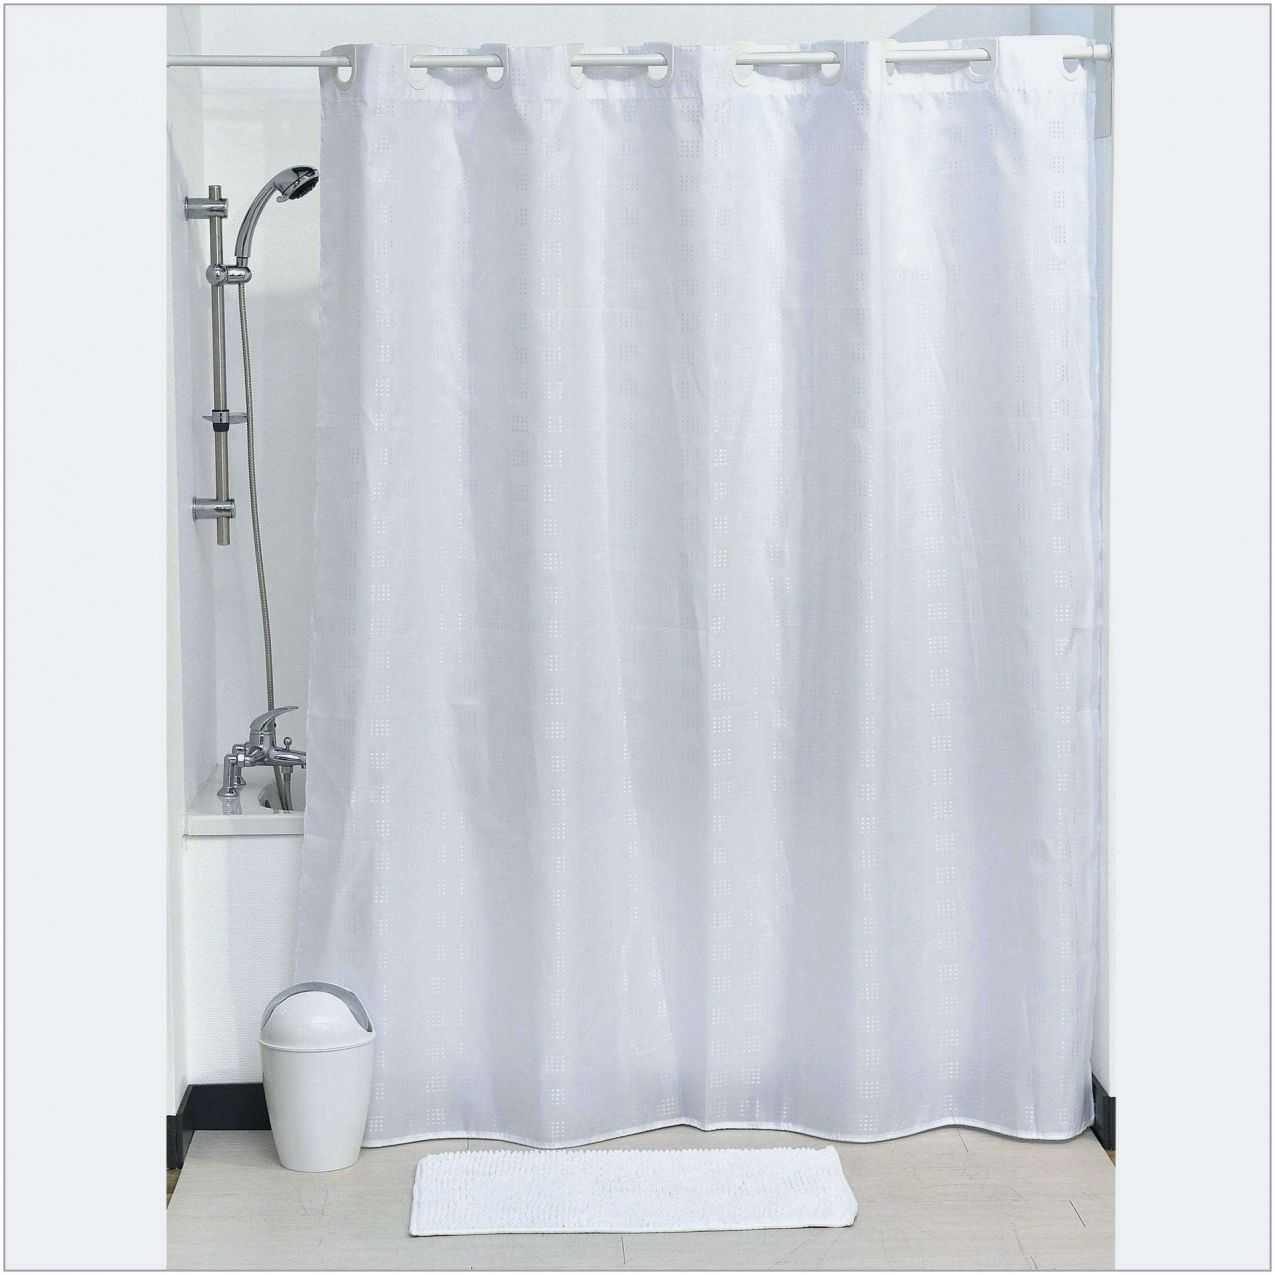 70 Rideau De Baignoire Castorama 2020 Check More At Https Www Unionjacktrooper Com 70 Rideau De B Hookless Shower Curtain Shower Curtain Polyester Curtains